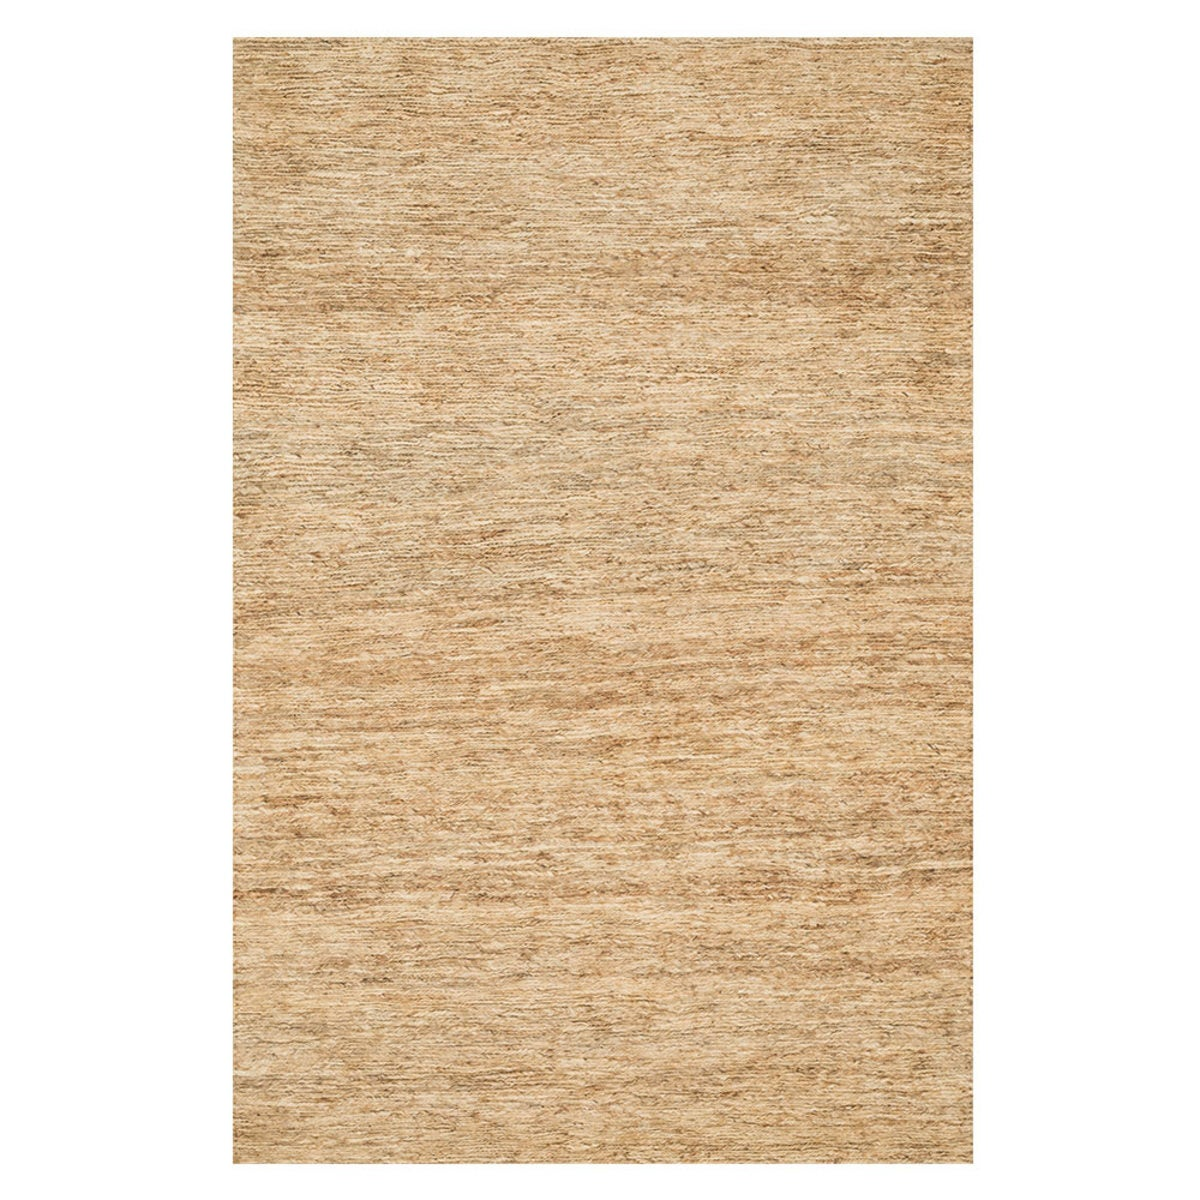 "Loloi Turin Too Braided Jute Rug in Beige - 5' x 7'6"" - Beige"